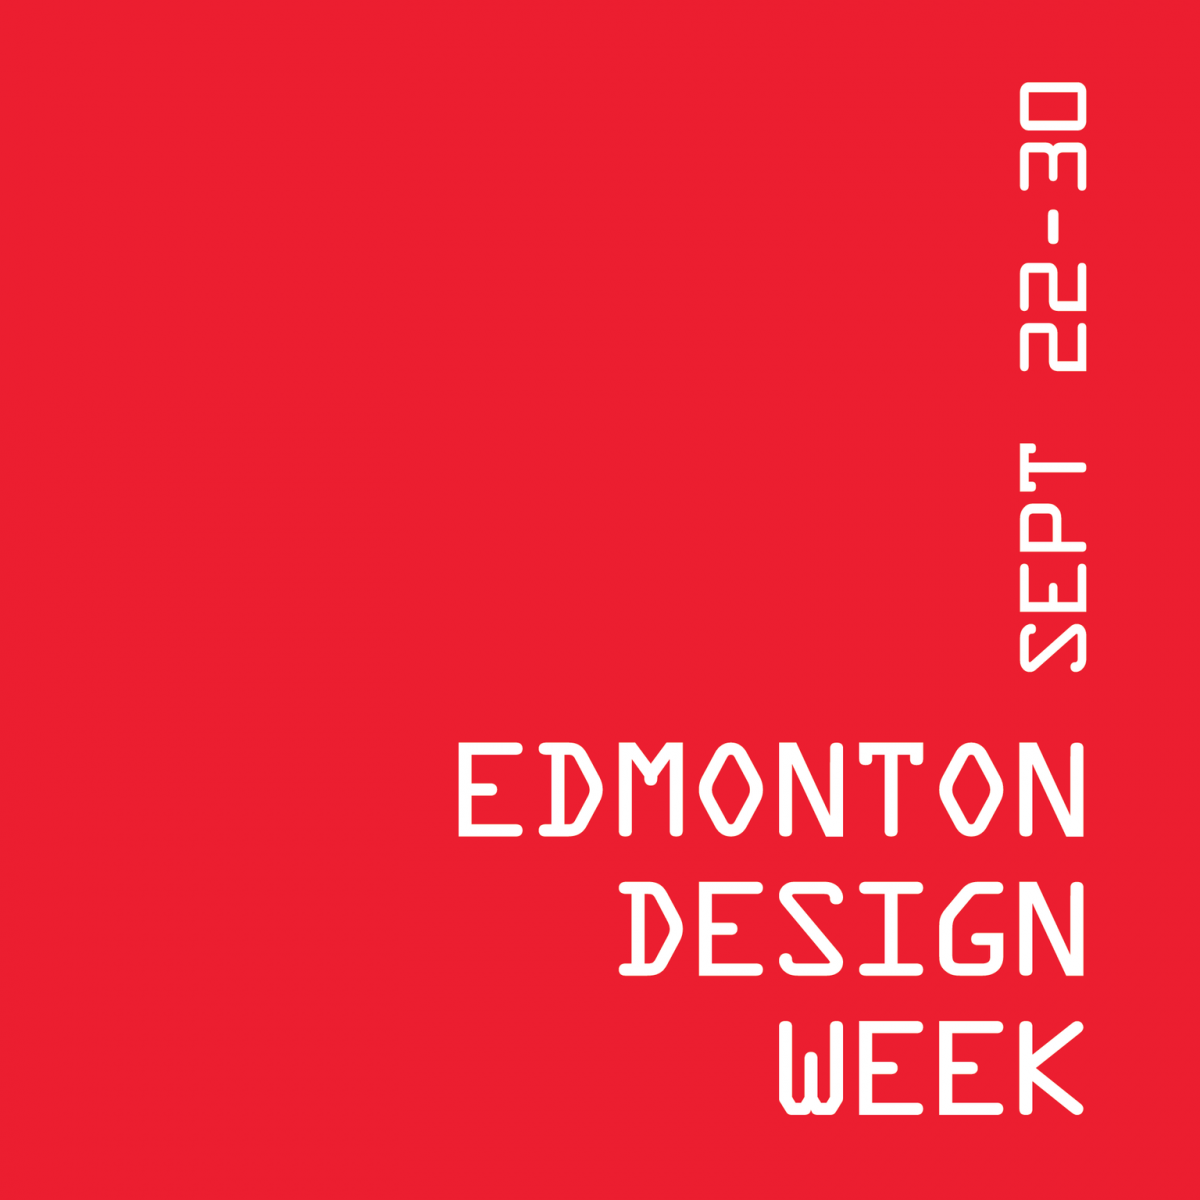 Edmonton Design Week logo